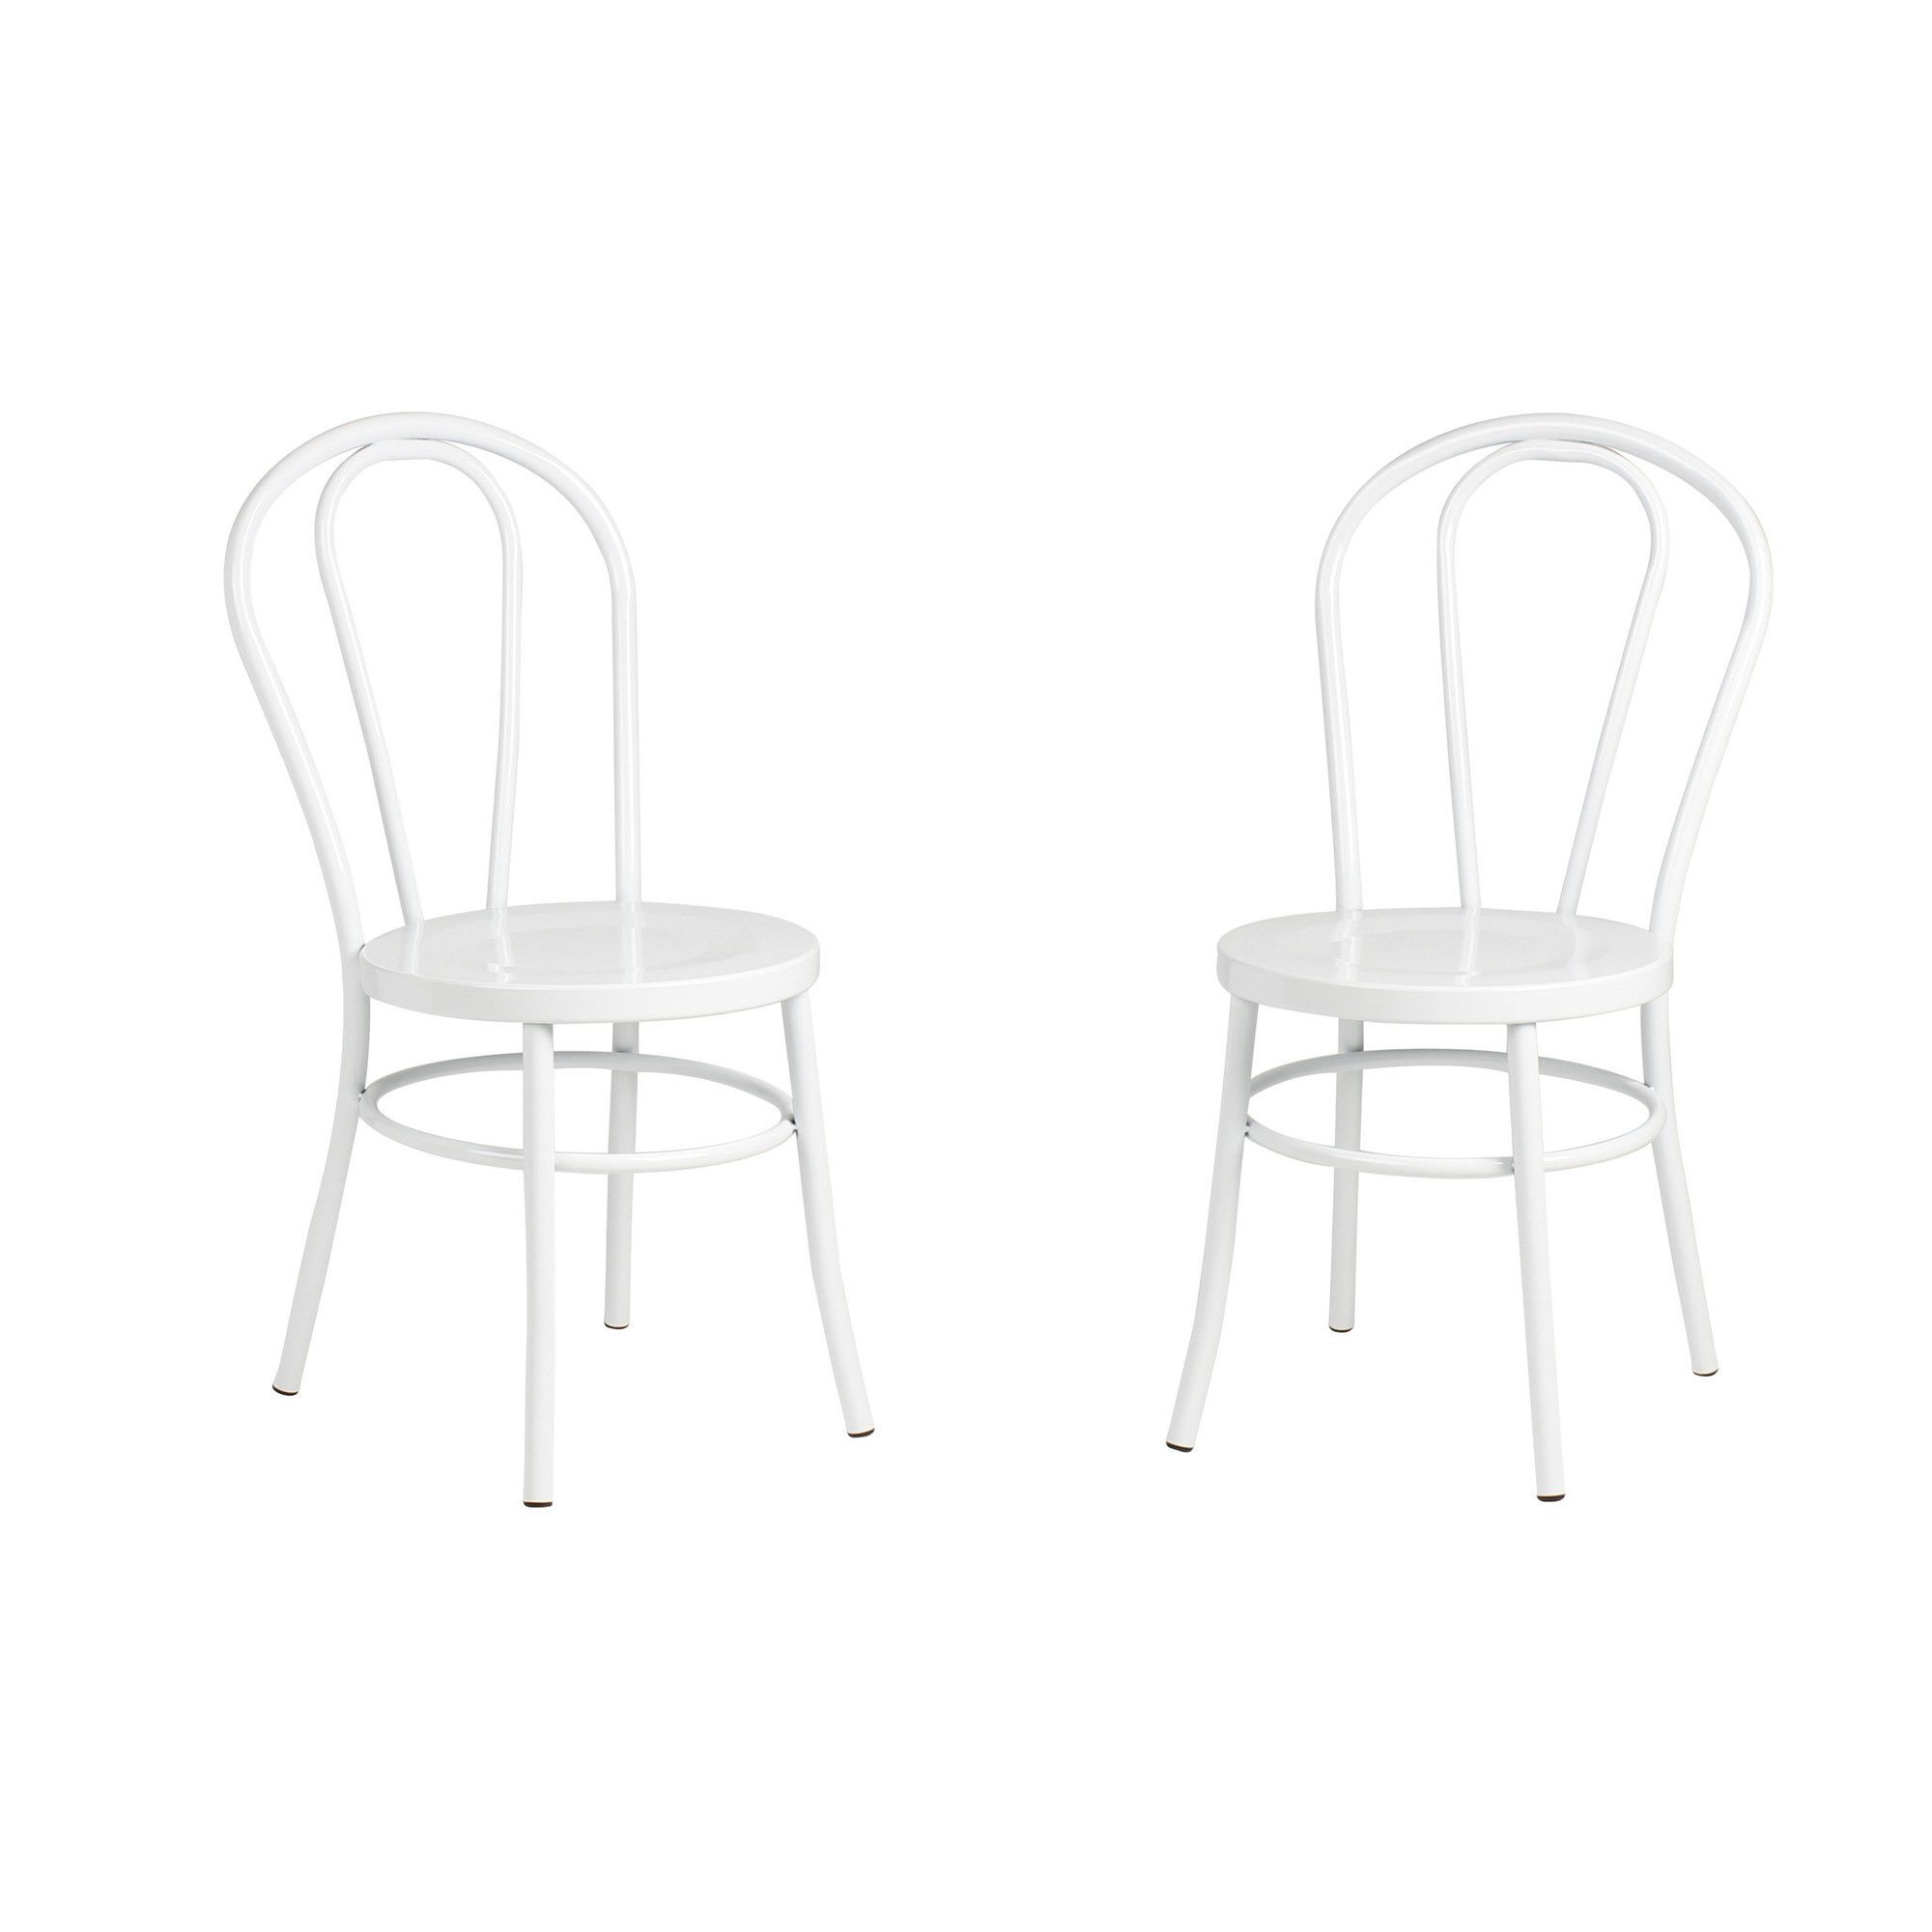 Remarkable Modern Metal Side Chair Products Dining Chairs Chair Dailytribune Chair Design For Home Dailytribuneorg